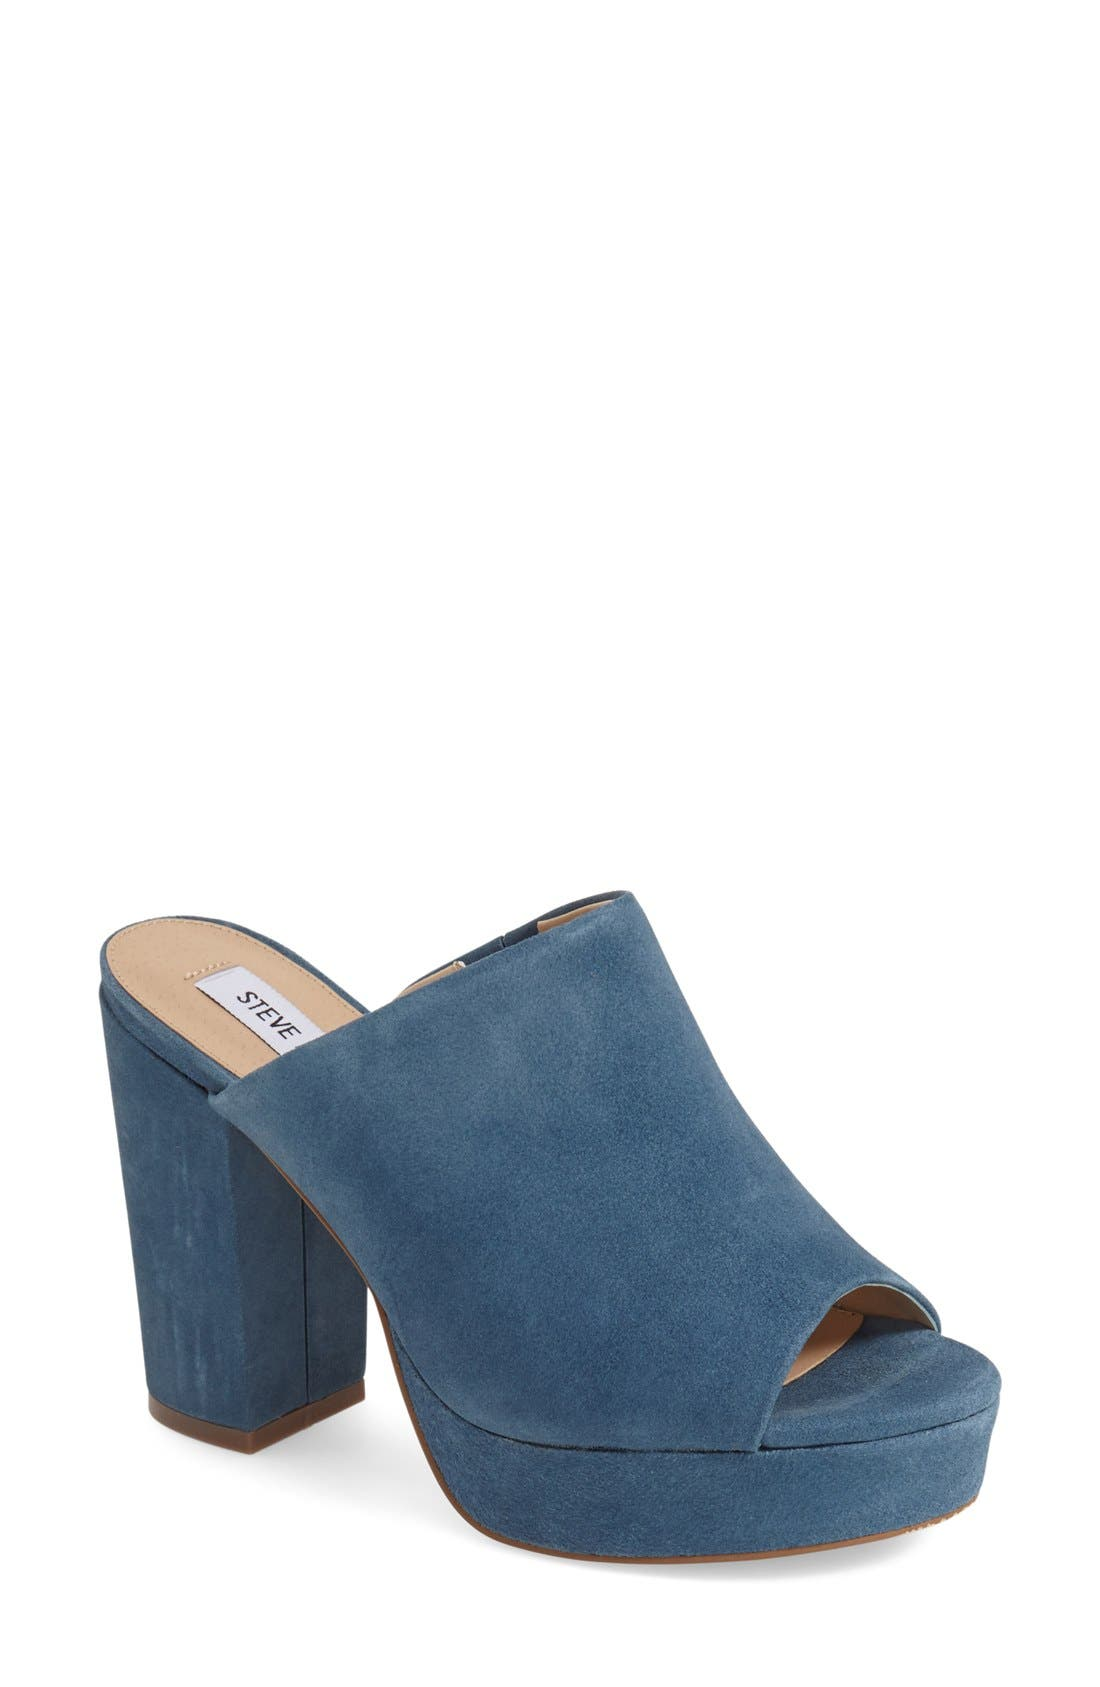 Alternate Image 1 Selected - Steve Madden 'Stonnes' Platform Sandal (Women)